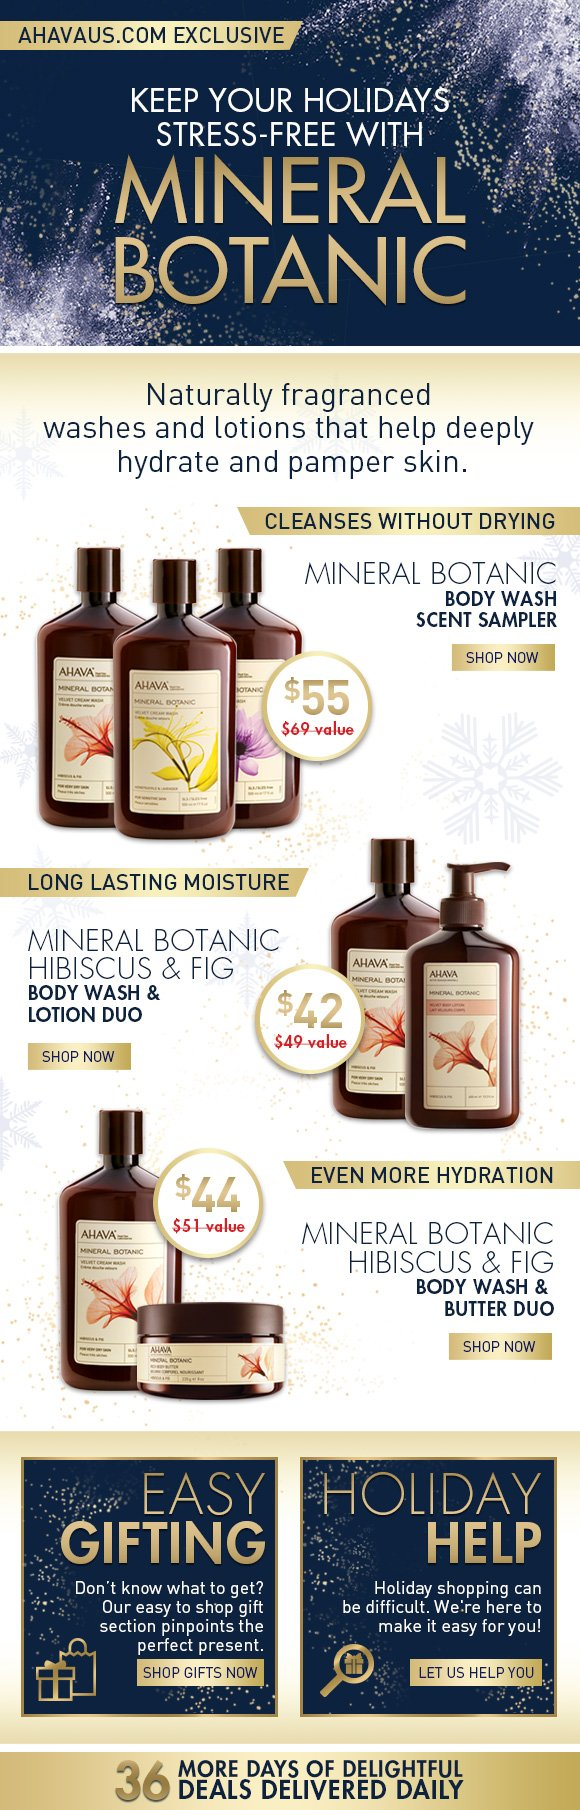 Keep your holidays stress–free with Mineral Botanic only on ahavaus.com These limited edition sets are prefect for gifting someone you love or yourself. Mineral Botanic Body Wash Scent Sampler Each scent offers a different therapeutic experience cleanses without drying  Shop Now Mineral Botanic Hibiscus & Fig Body Wash & Lotion Duo Soothe, nourish and hydrate all over with this sweetly scented duo. long lasting moisture Shop Now Mineral Botanic Hibiscus & Fig Body Wash & Butter Duo Our bestselling Mineral Botanic sent now in a deeply hydrating duo. even more hydration Shop Now Easy Gifting Don't know what to get?  Our easy to shop gift section pinpoints the perfect present.   Shop gifts now Holiday Help Holiday shopping can be difficult. We're here to make it easy for you! Let us help you 36 more days of delightful deals delivered daily